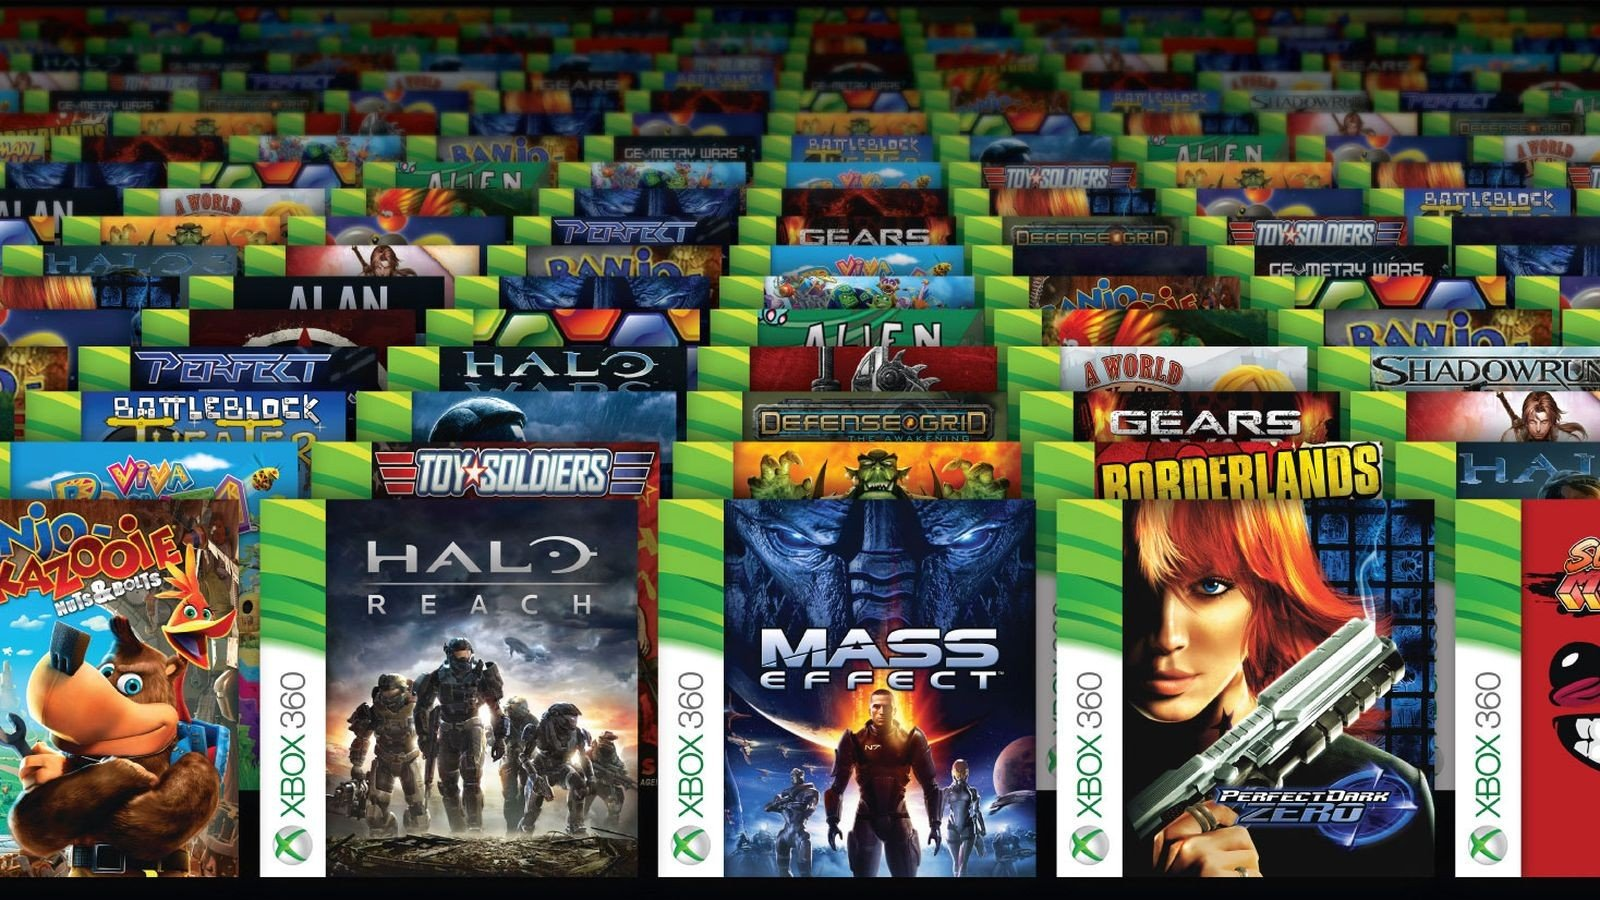 All original Xbox backward compatible games on Xbox One